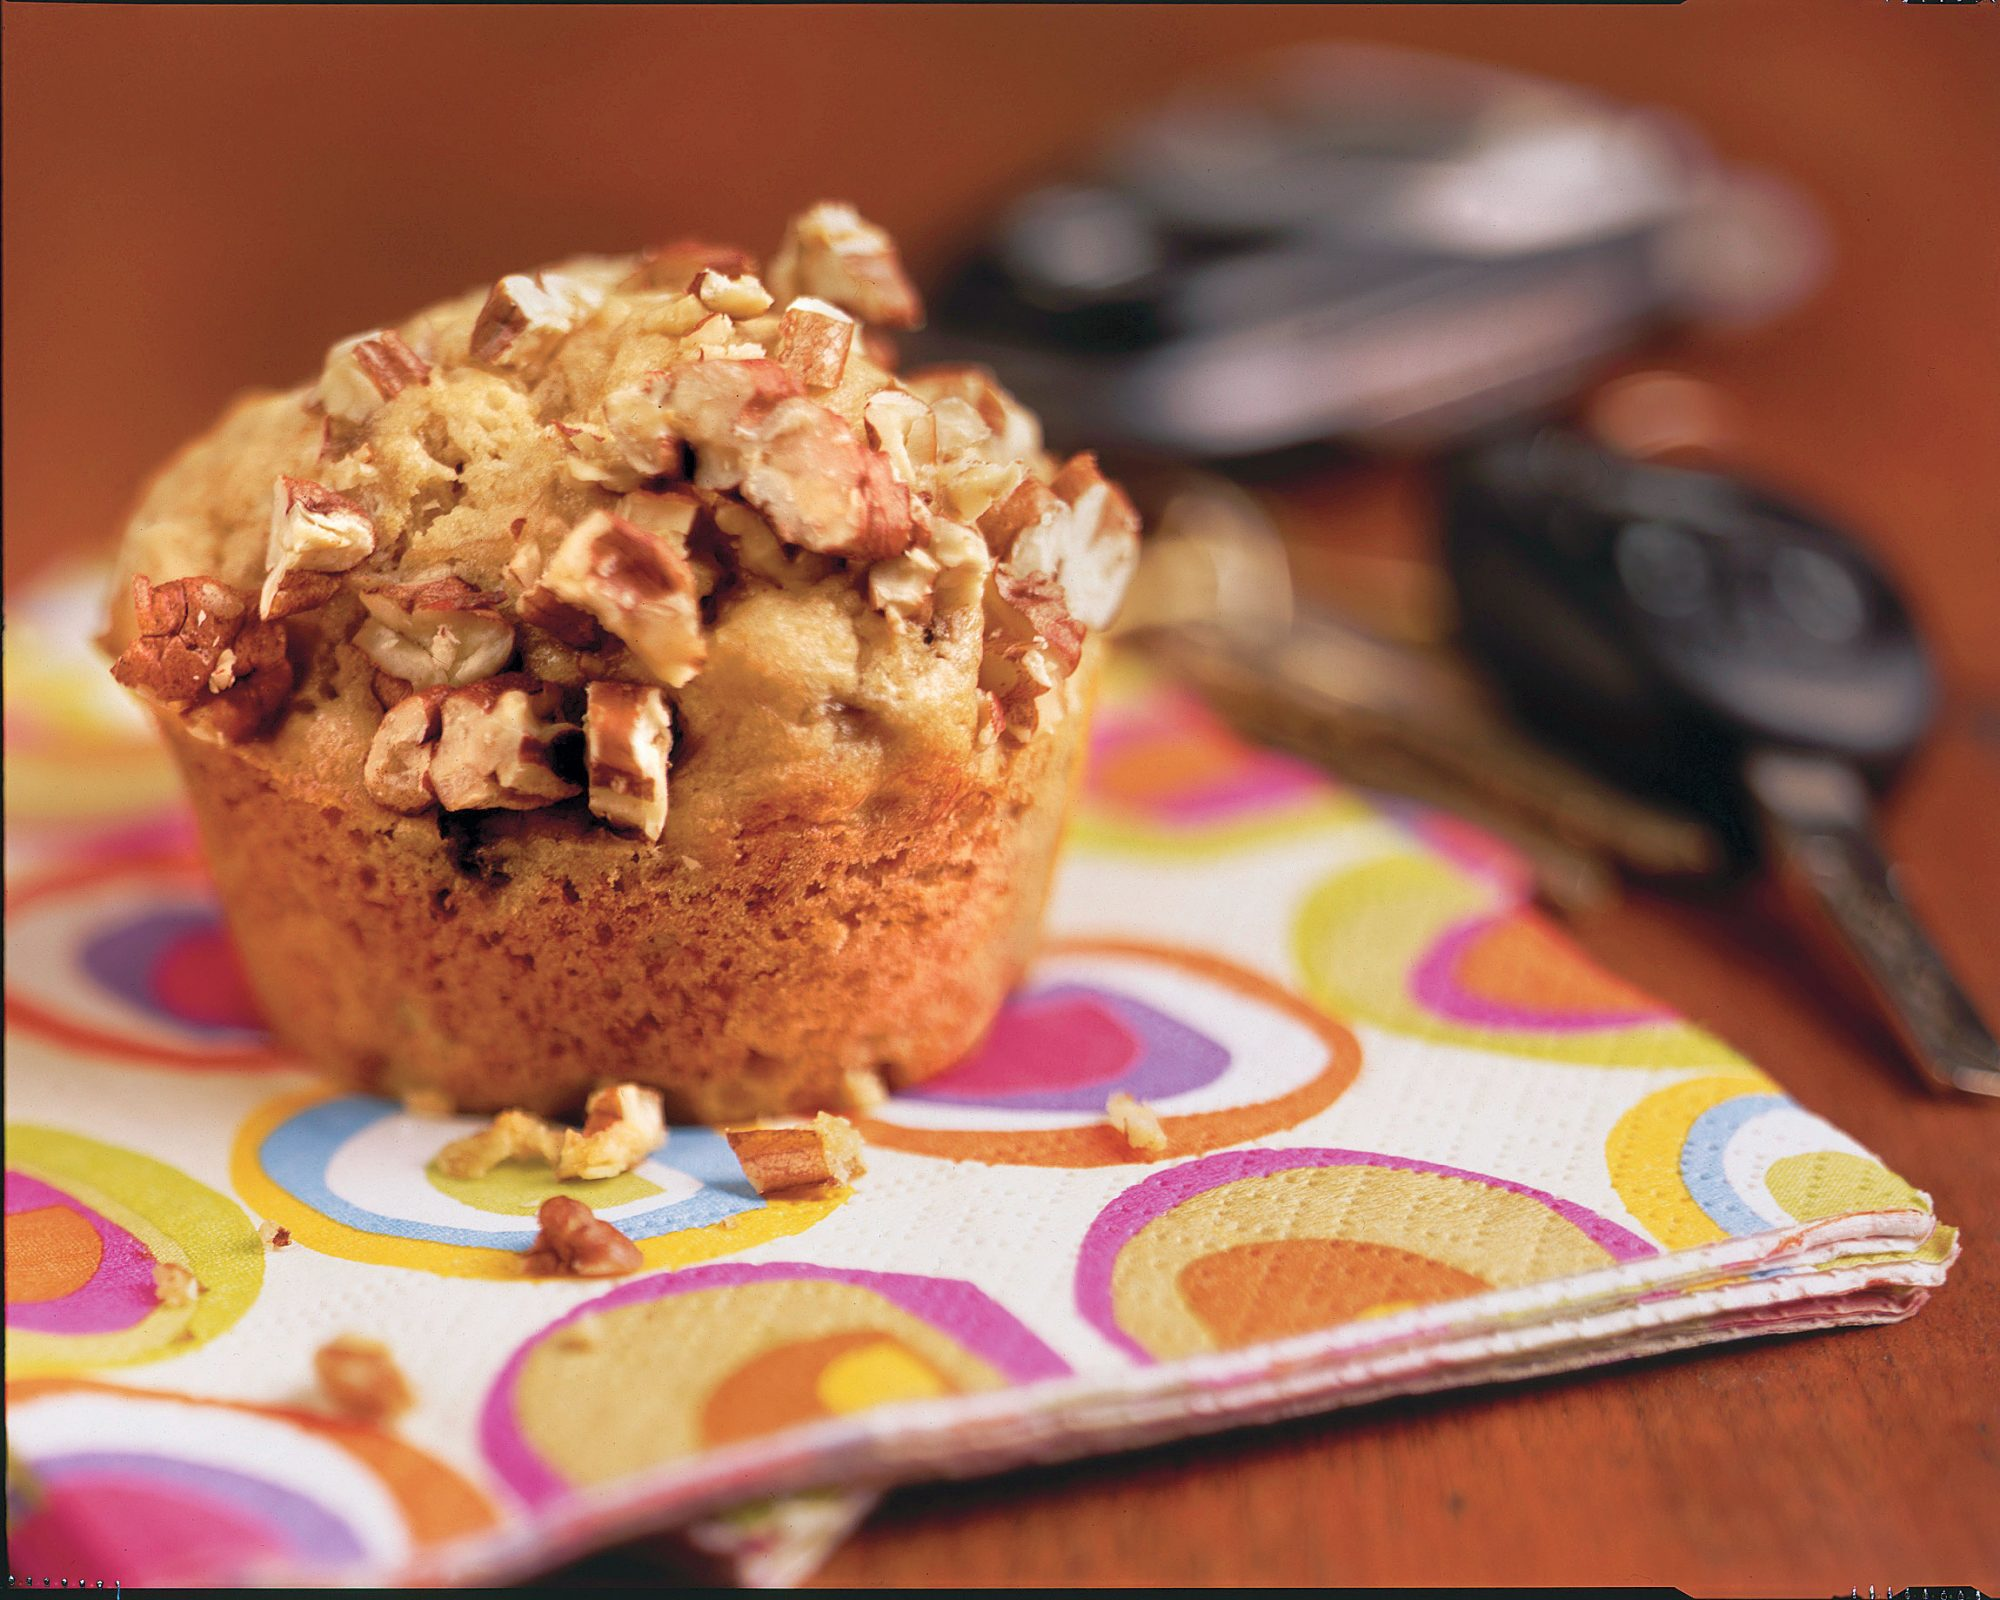 Muffins and Bread Recipes: Brown Sugar-Banana Muffins